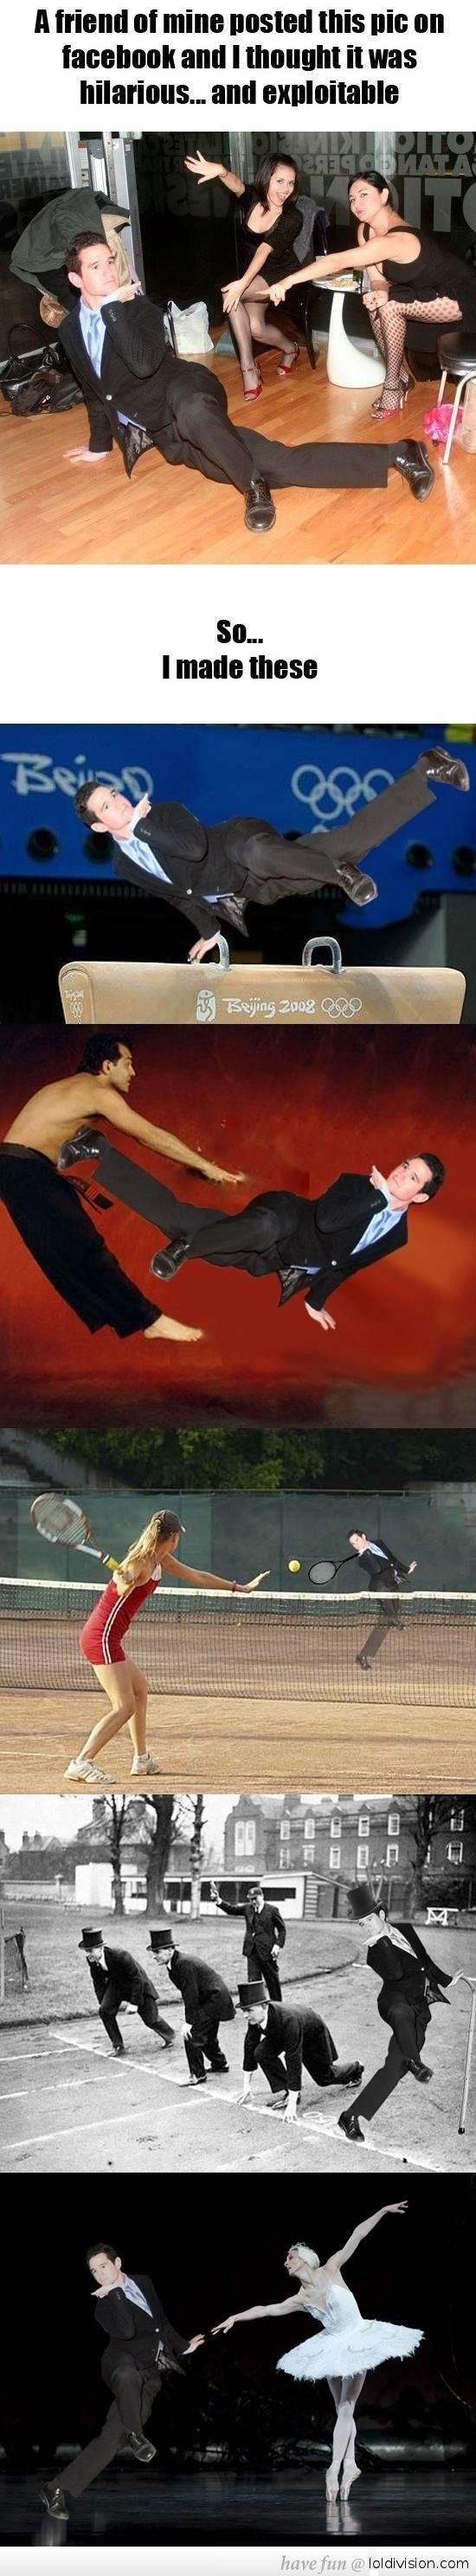 Photoshopping Your Friend Into Funny Situations